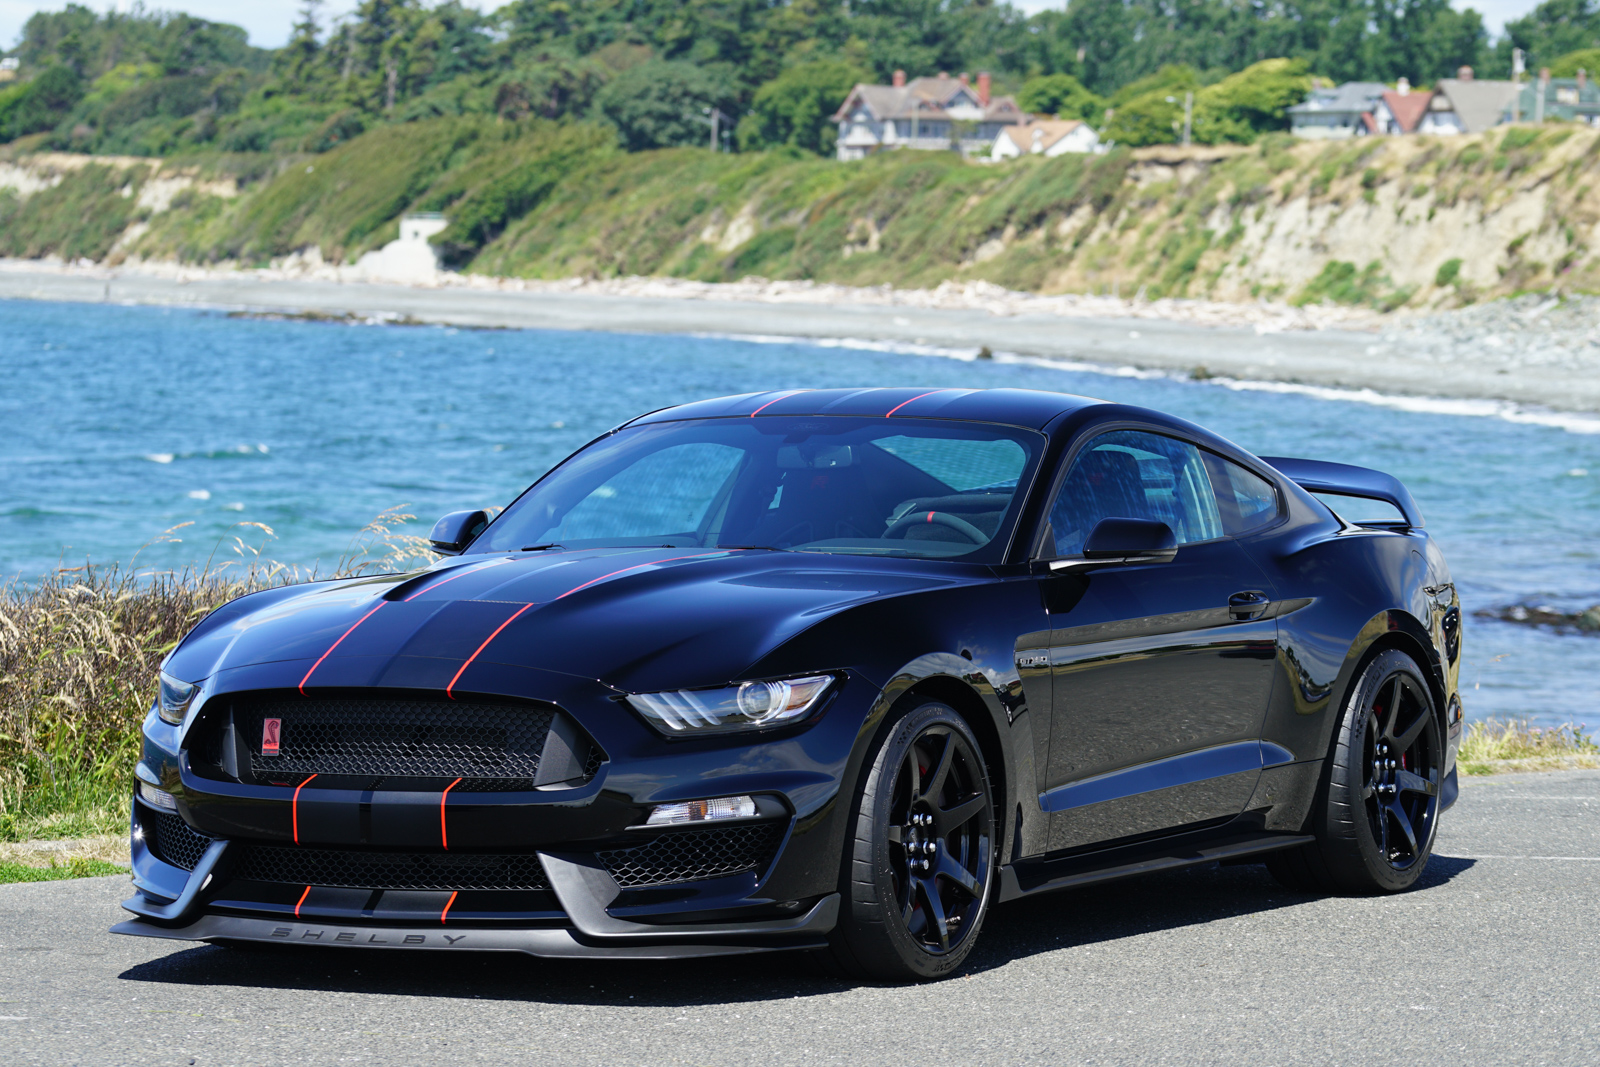 Ford Mustang Shelby Gt350r 2016 Ford Shelby Gt350r Mustang For Sale Silver Arrow